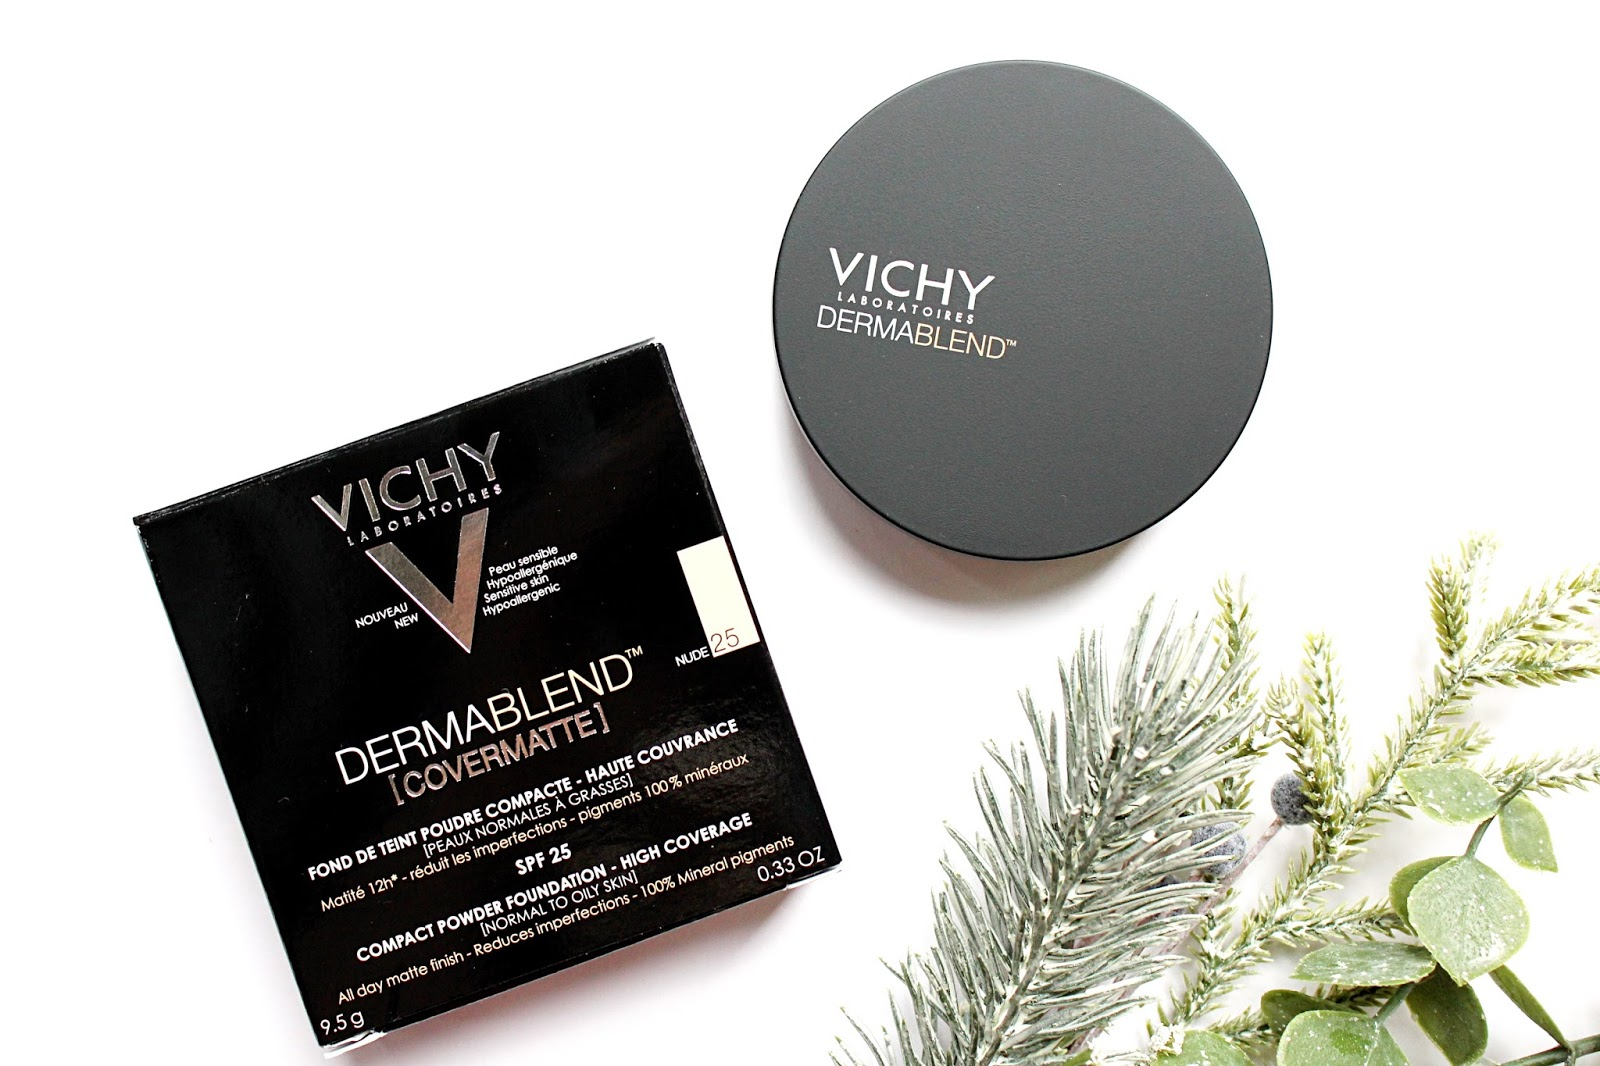 Vichy Dermablend [Covermatte] Powder Review